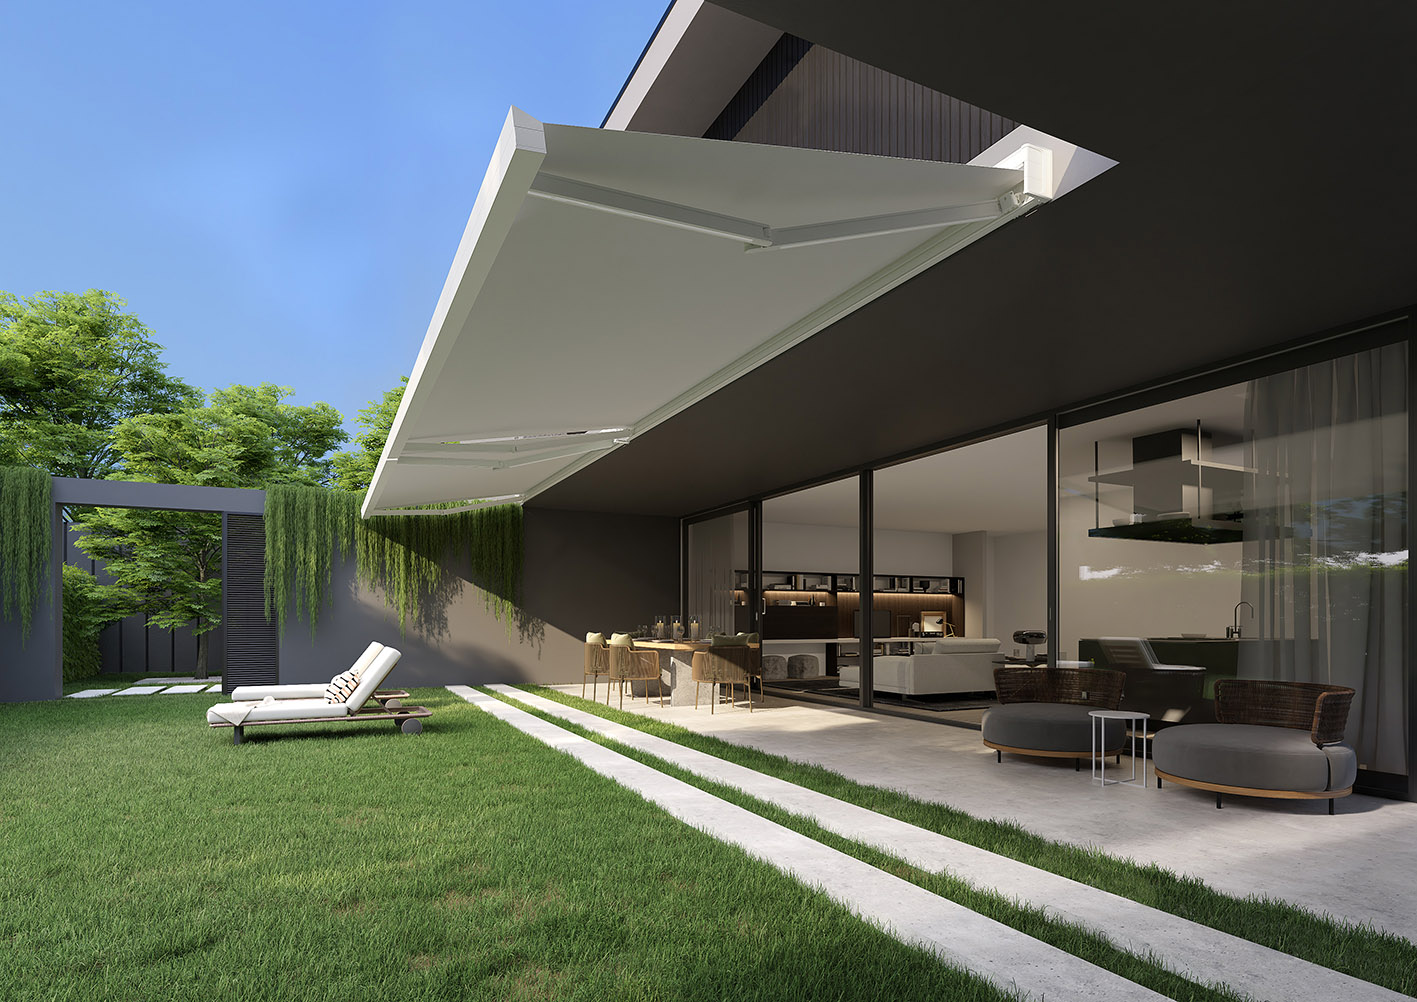 Toldos Ke Outdoor Design